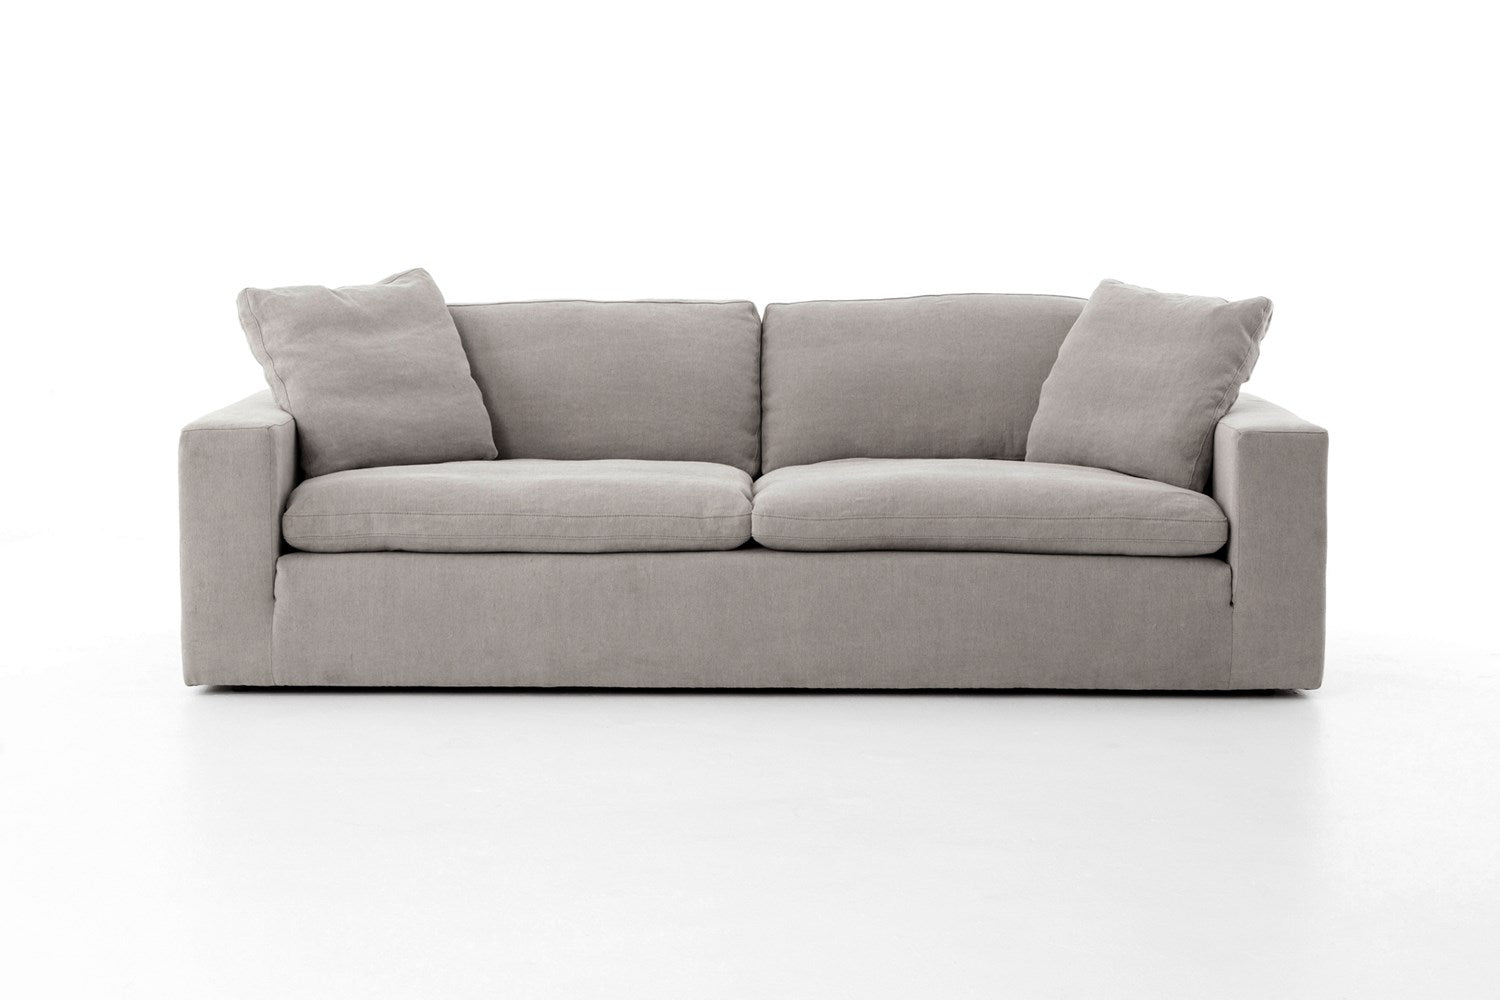 Plume Sofa in Heather Twill Pewter